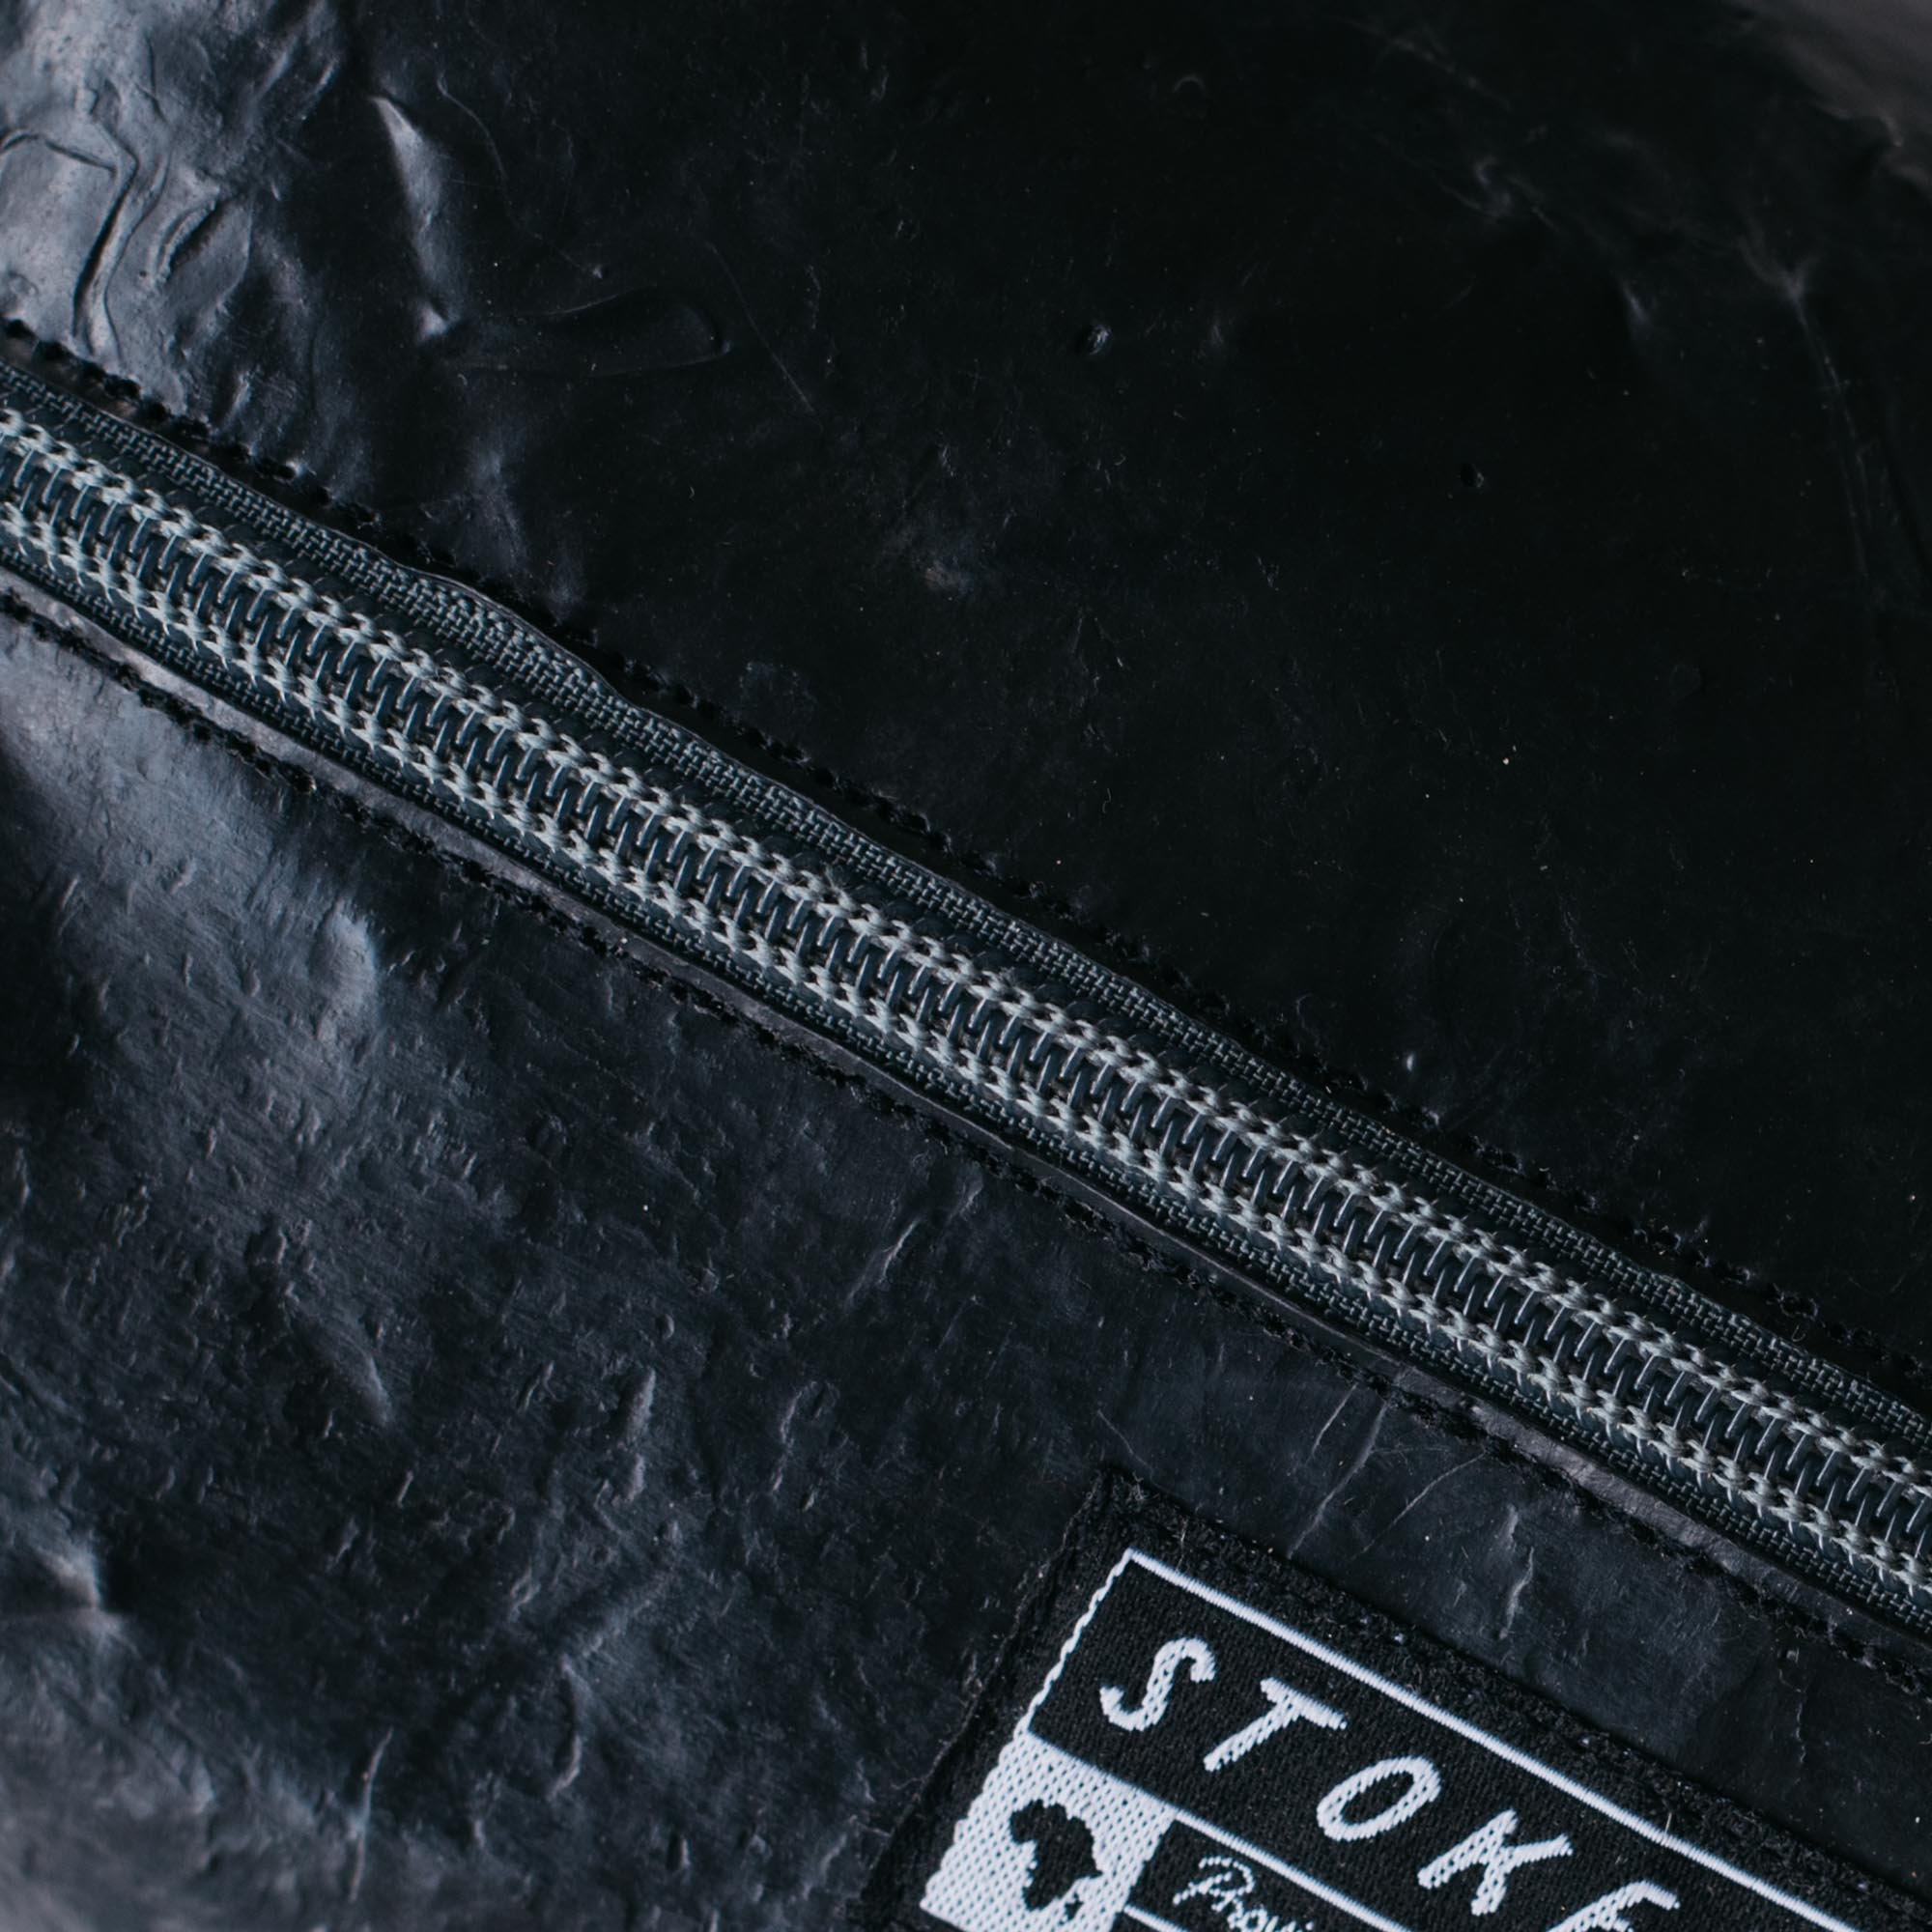 Upcycled Toiletry Bag • Karoo Black - Stokedthebrand. Lifestyle products for outdoor adventures. Made in South Africa